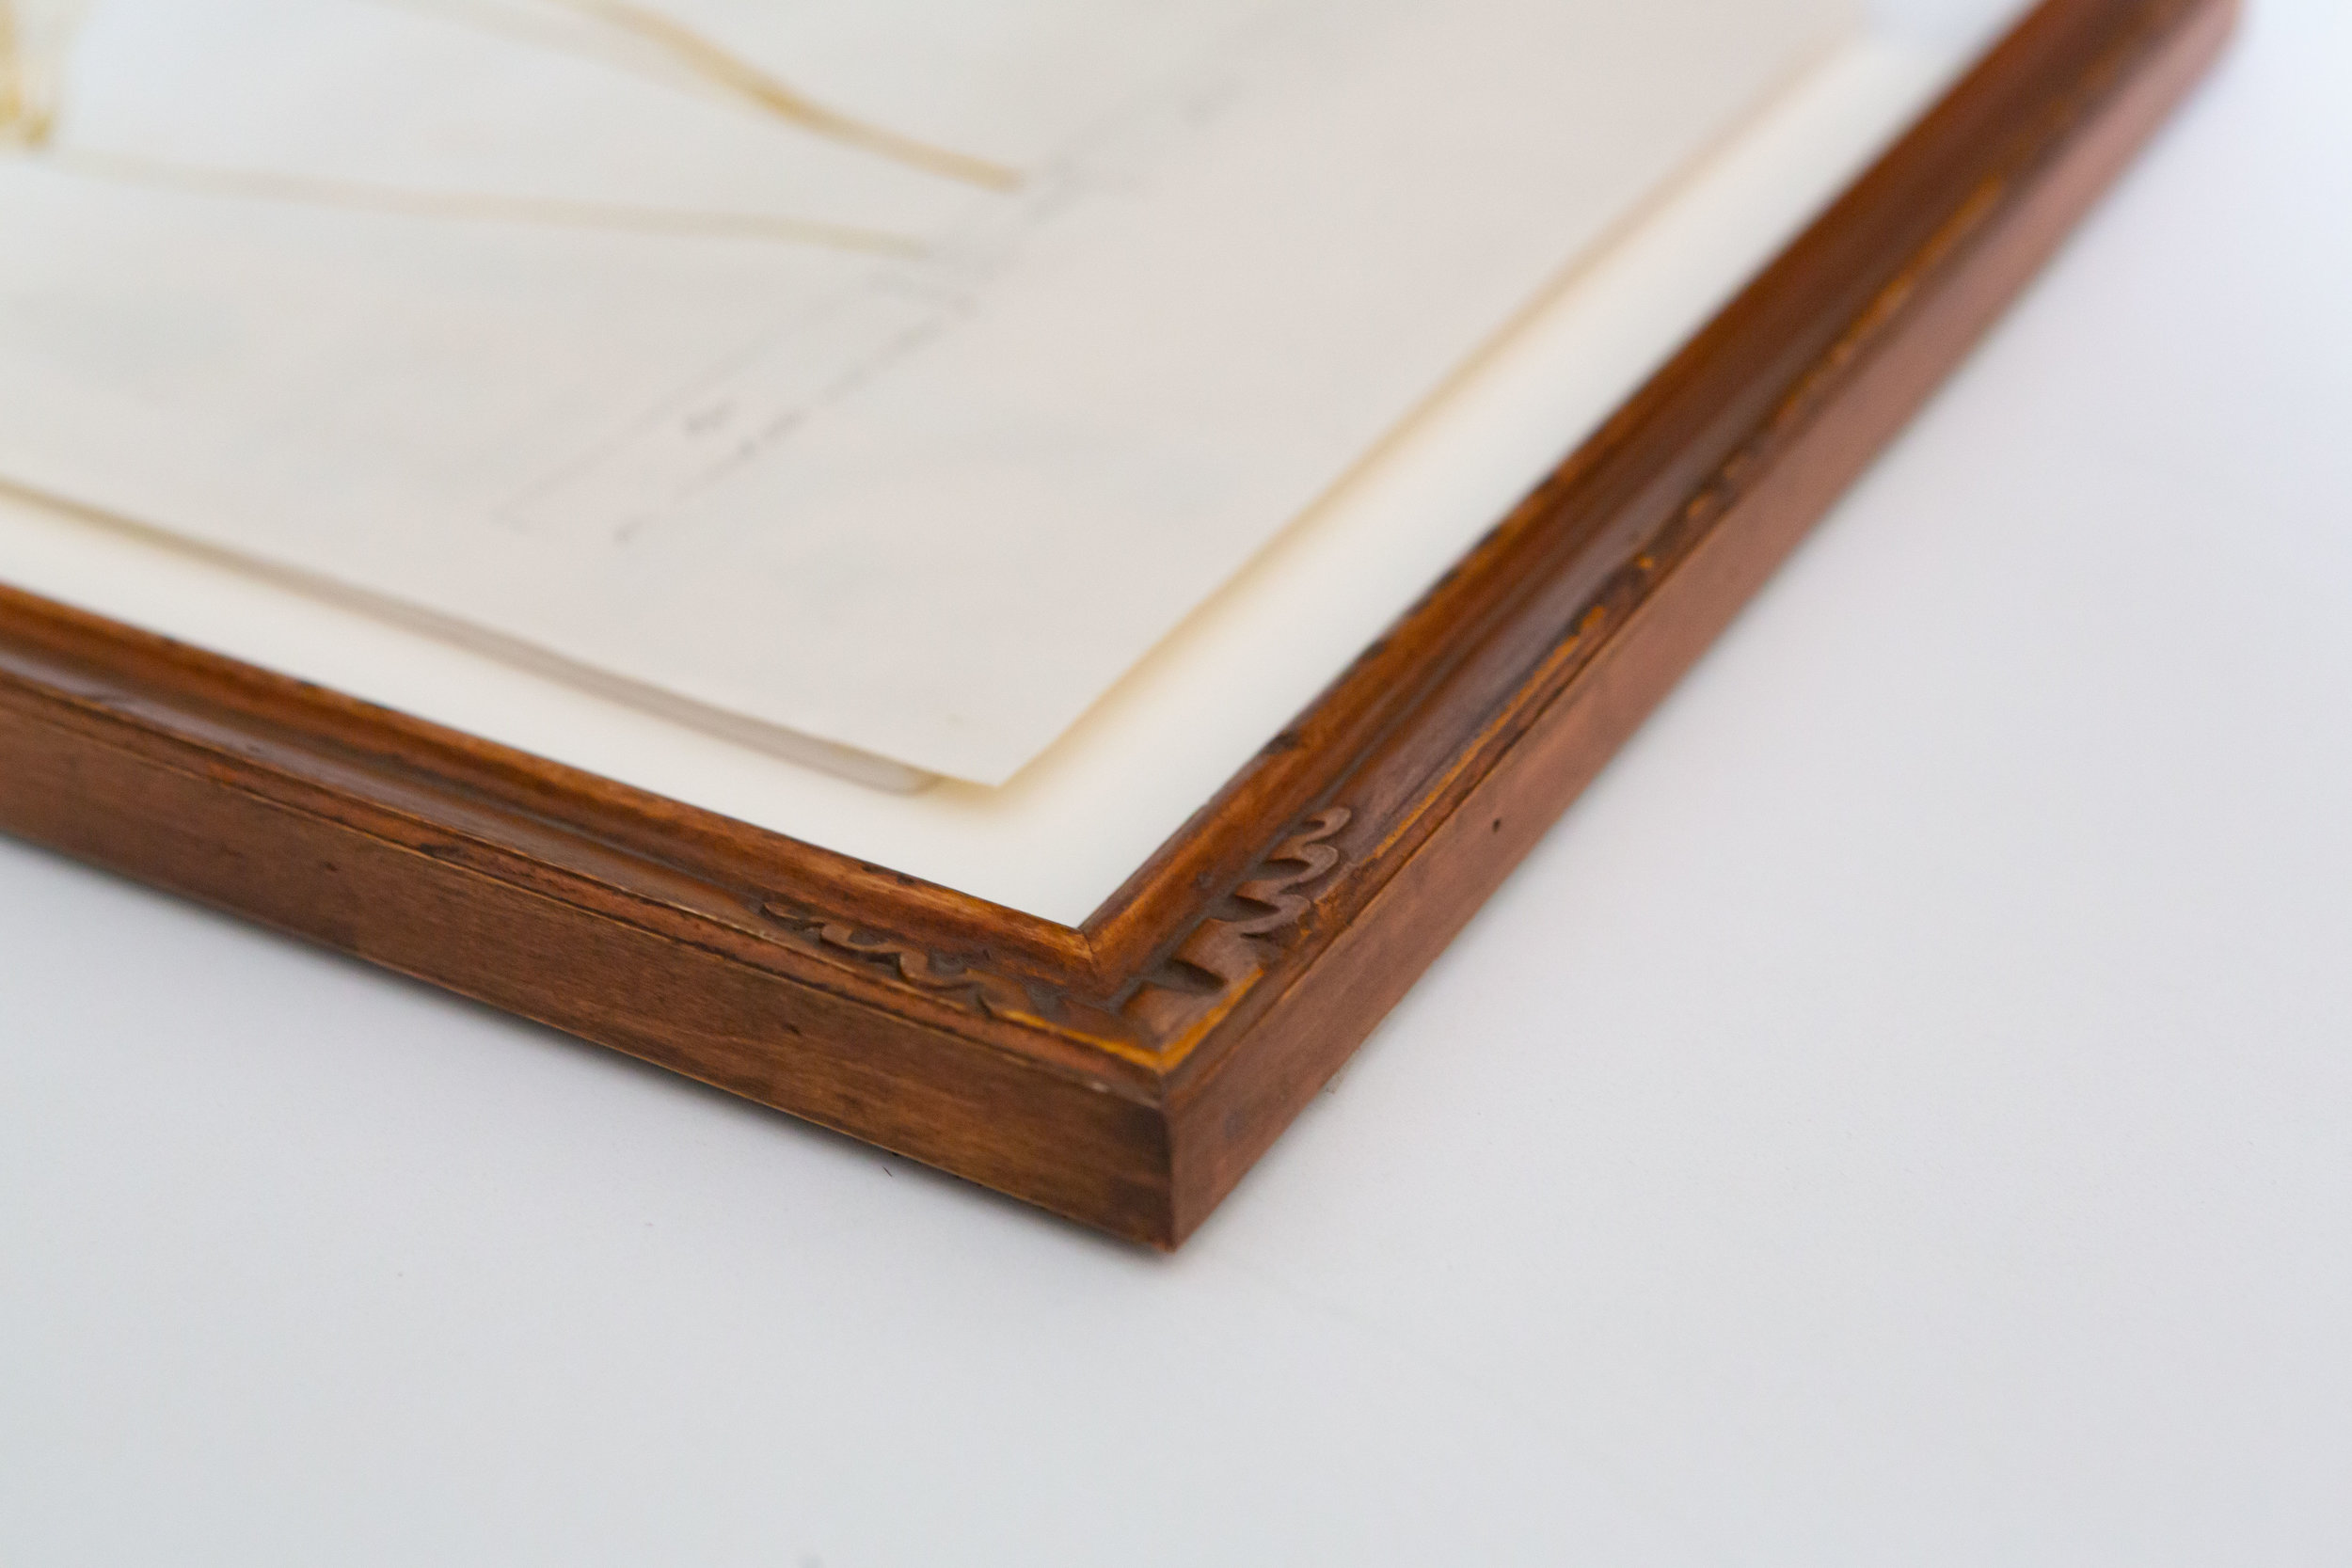 nothing but the best - We use only the highest quality material and archival methods for mounting and fitting. We offer a variety of closed corner frames and a selection of hardwood mouldings made in the USA.